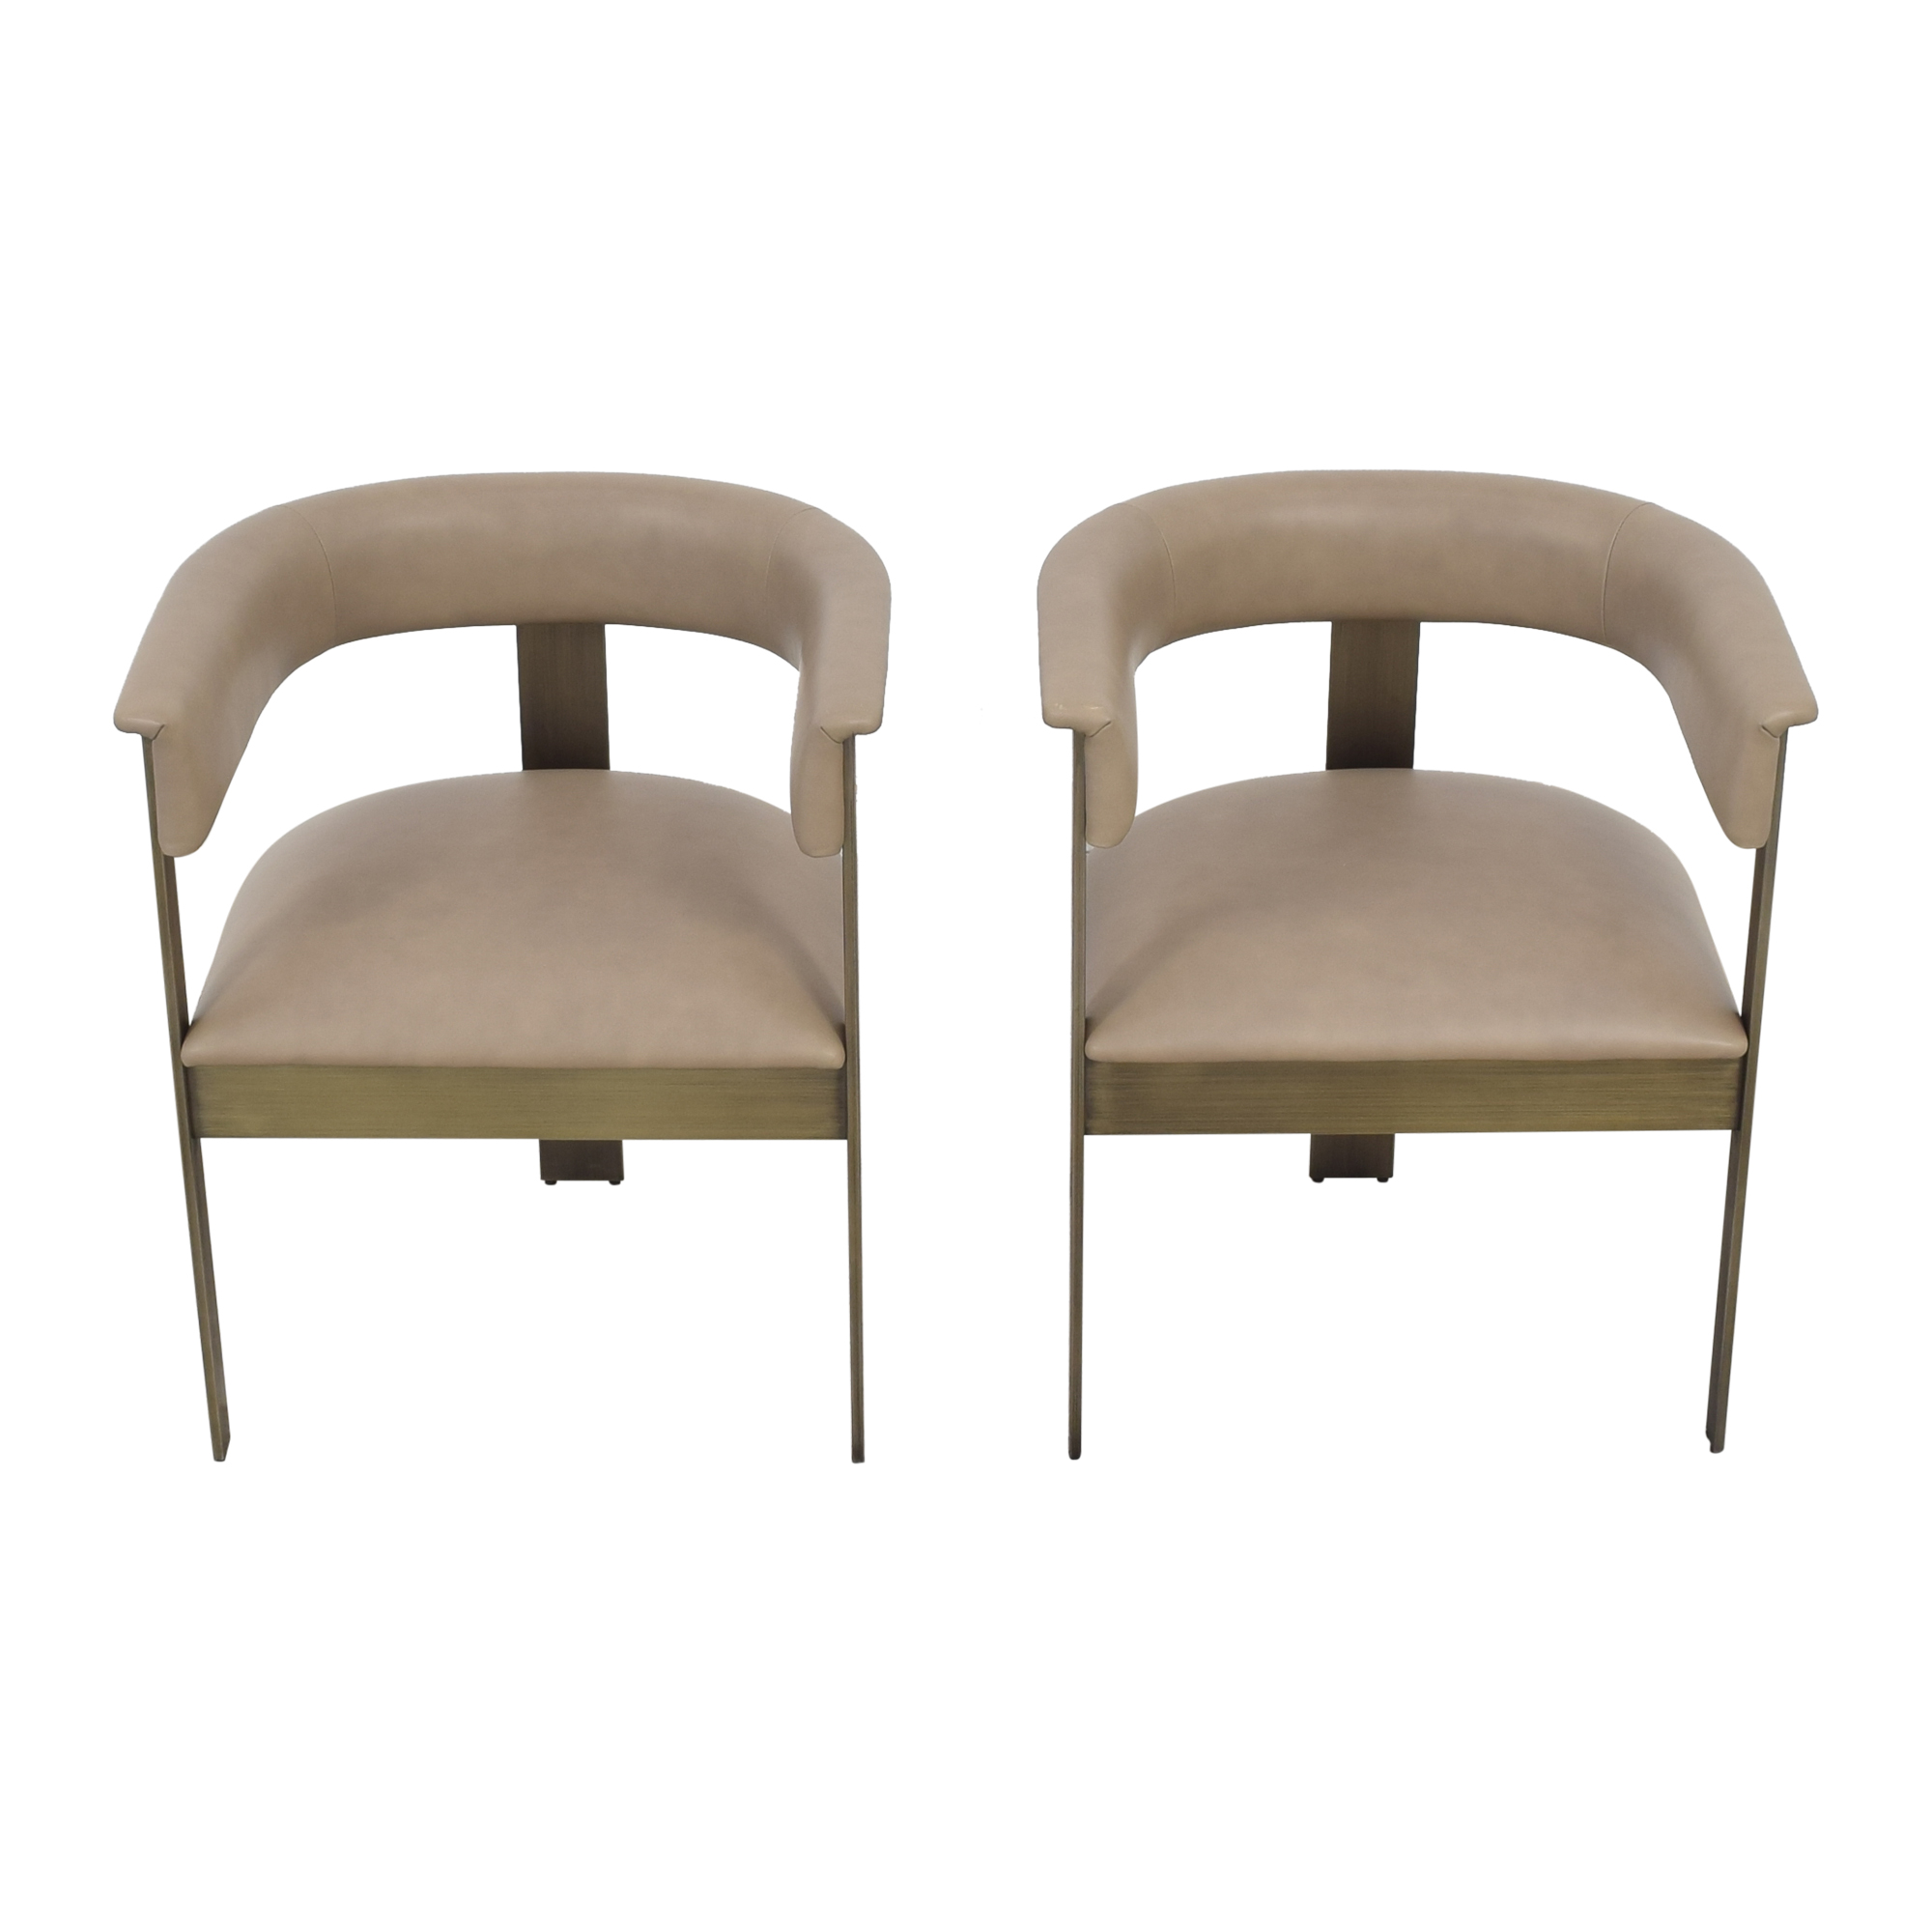 Interlude Home Interlude Home Darcy Dining Arm Chairs nj